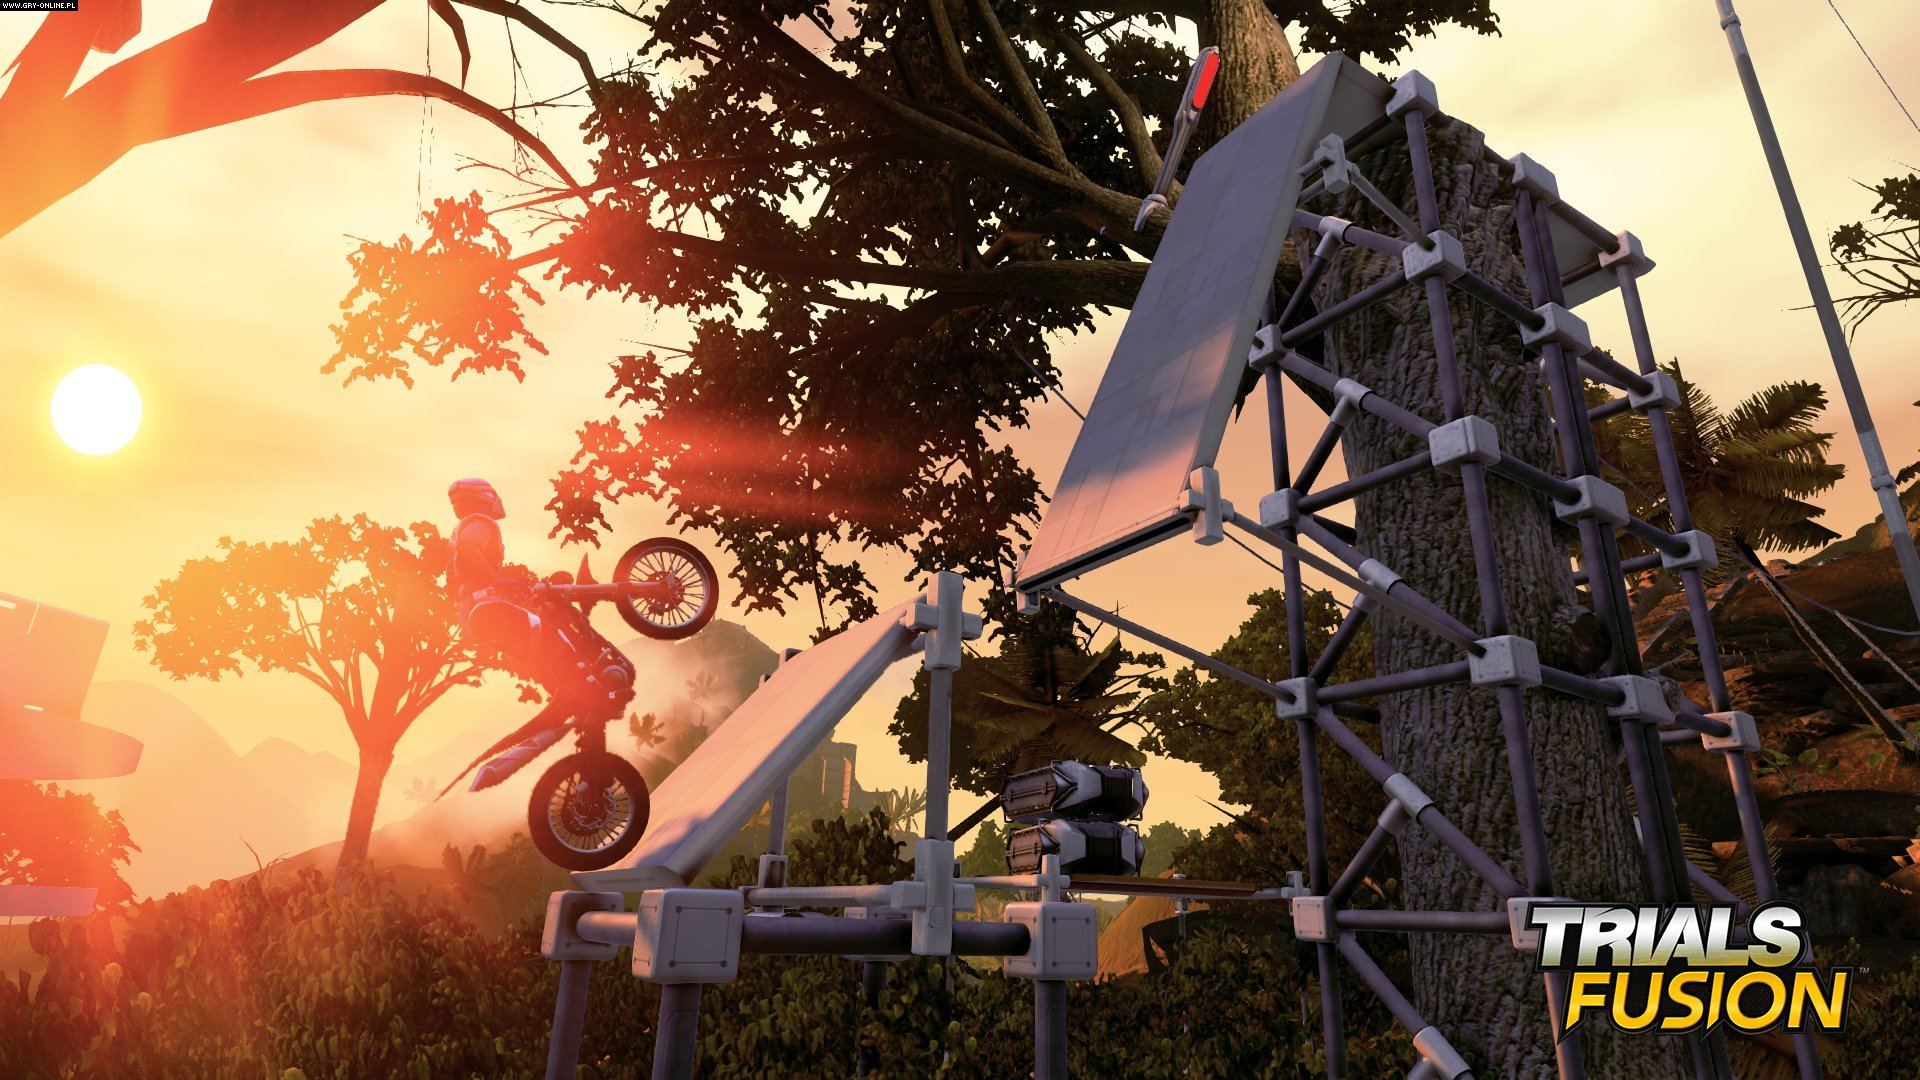 Trials Fusion PC, X360, XONE, PS4 Games Image 15/20, RedLynx Ltd, Ubisoft